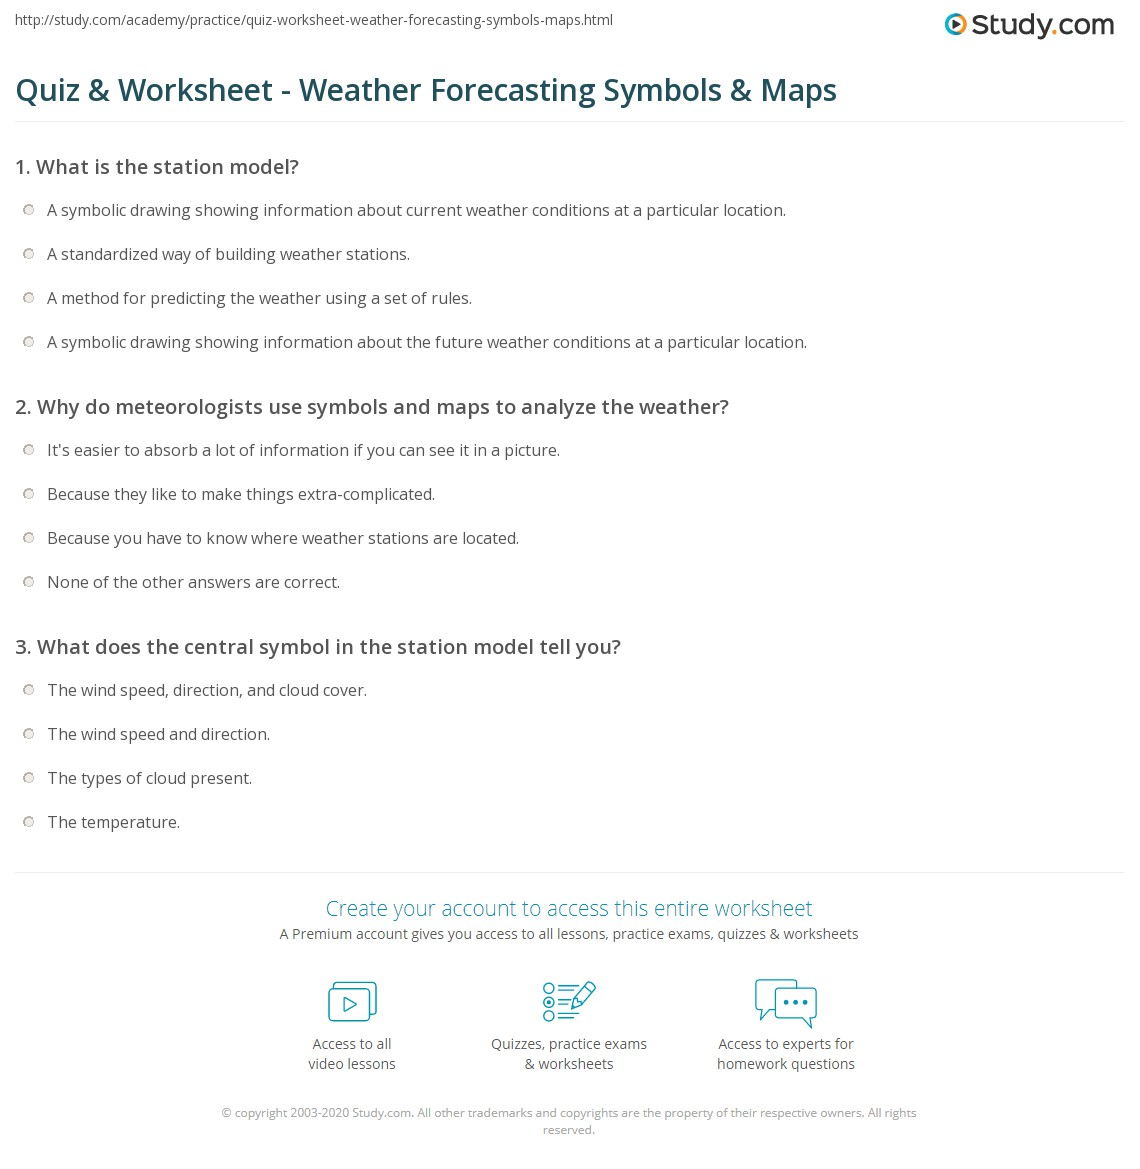 Quiz Worksheet Weather Forecasting Symbols Maps Study